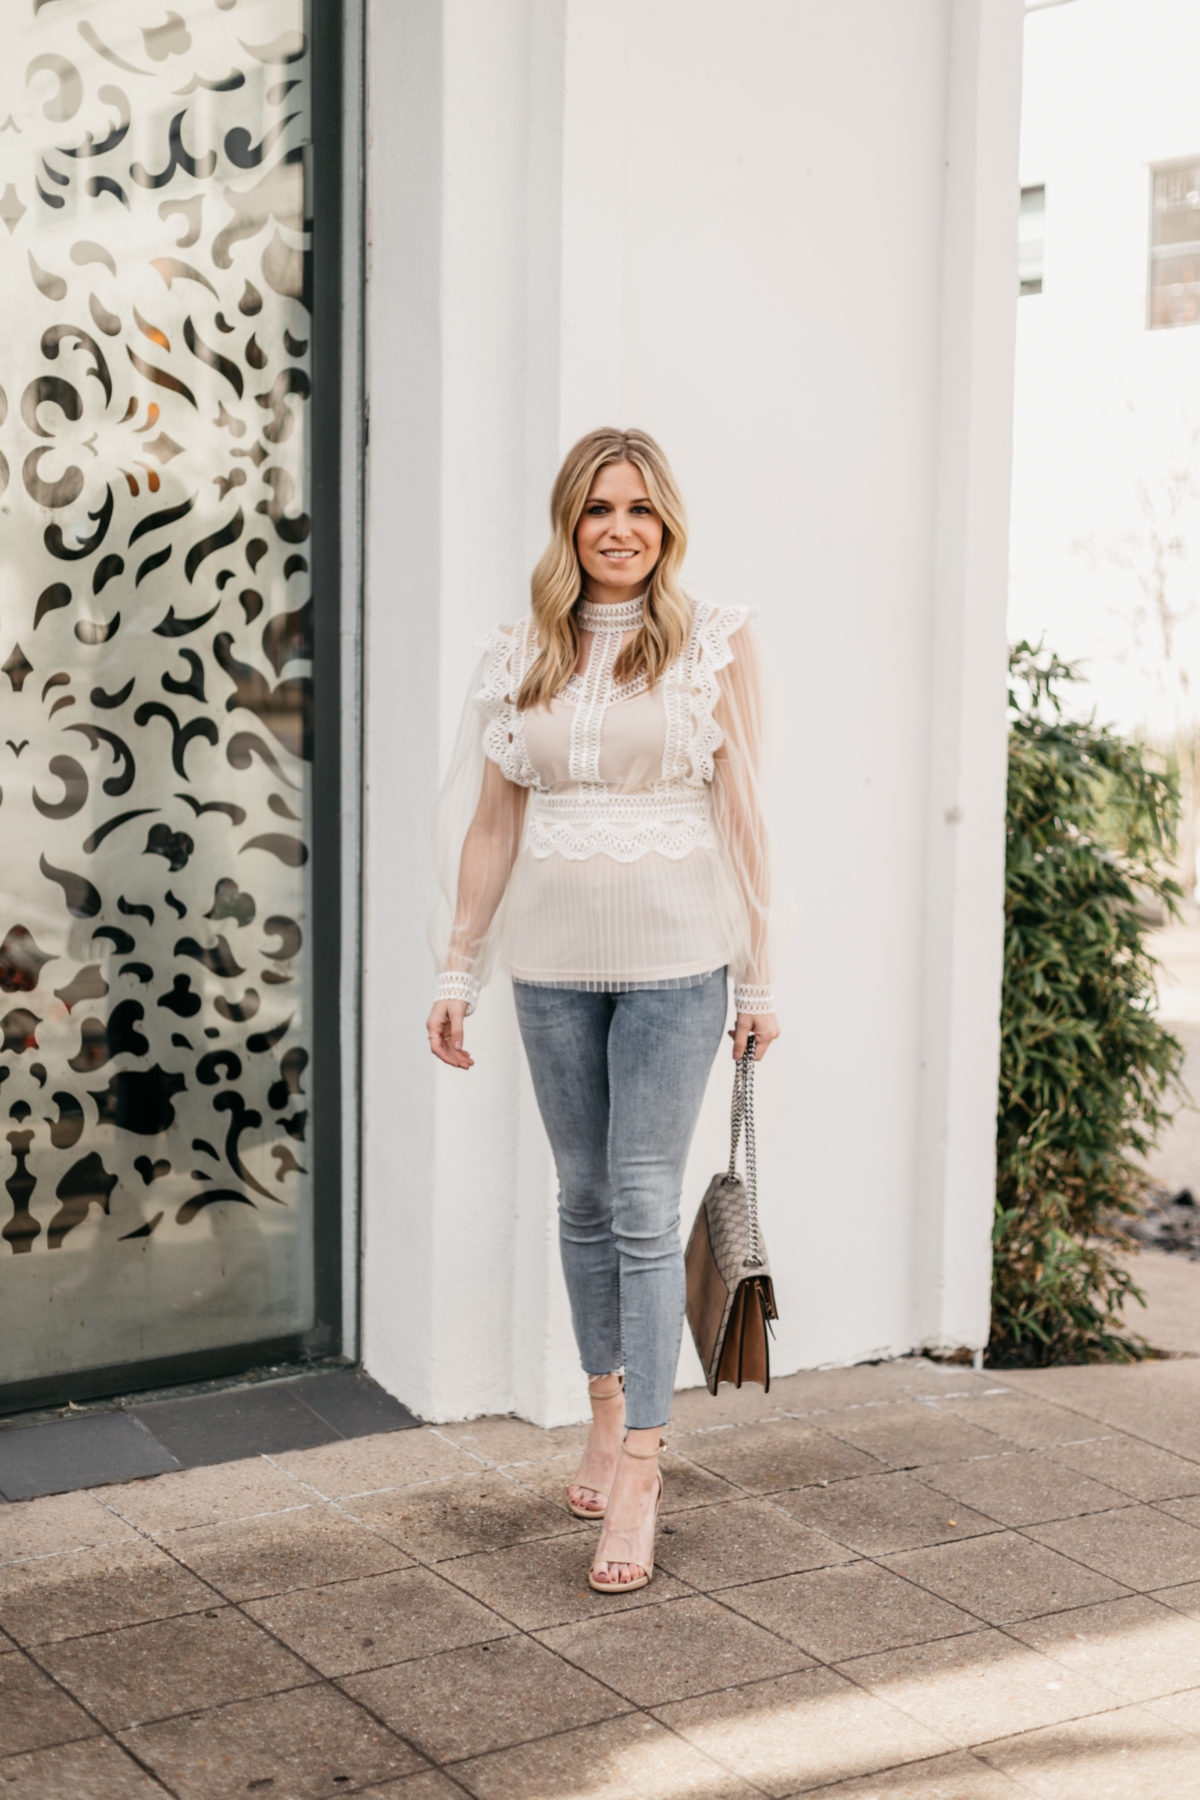 WHITE OUTFIT FOR SPRING